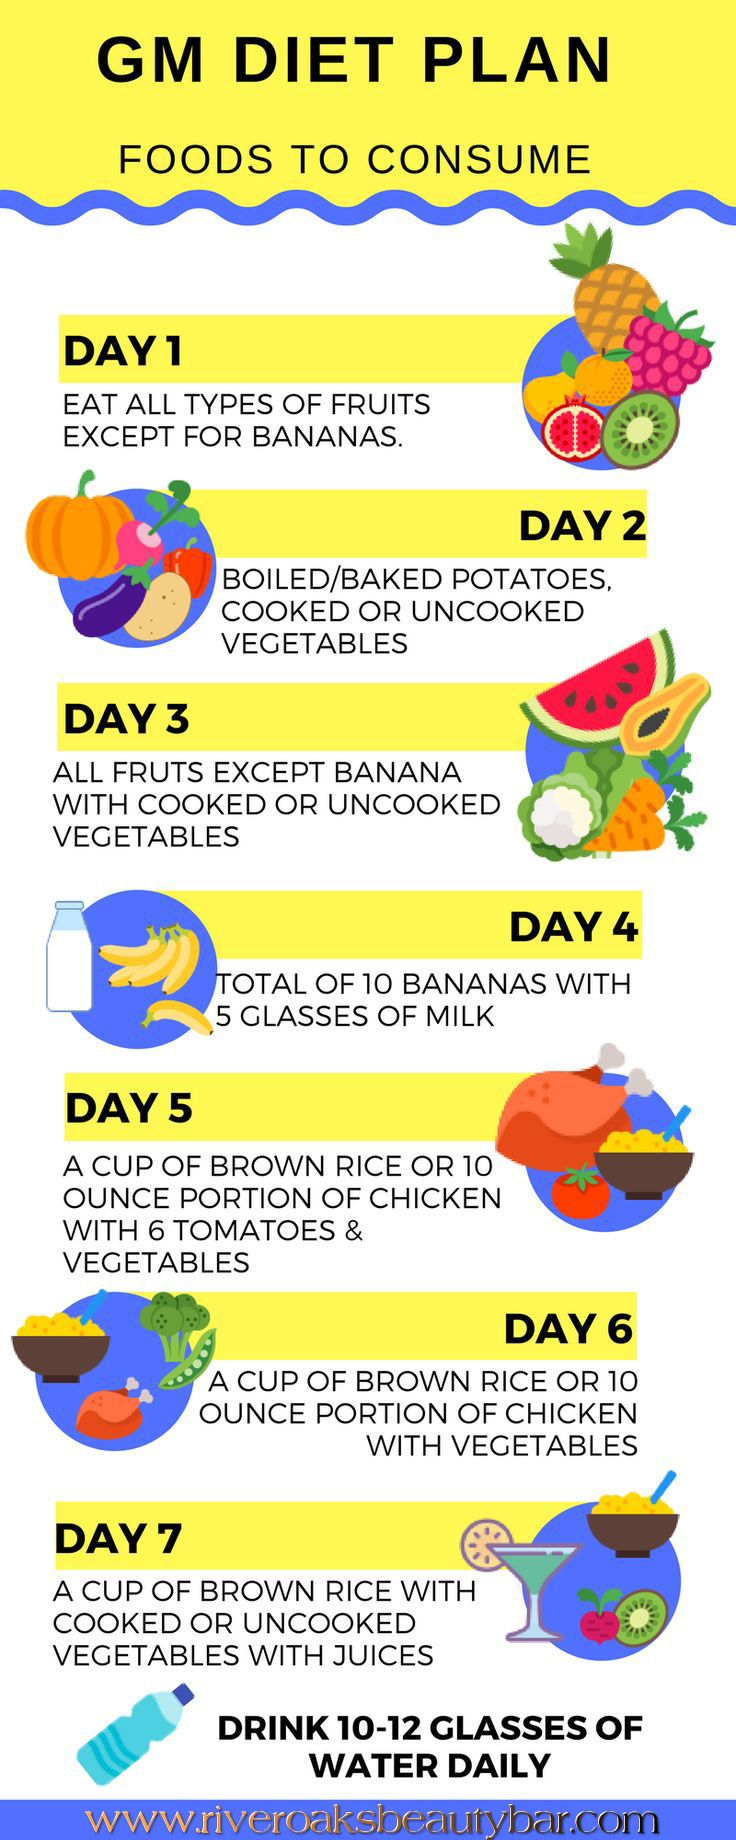 GM diet: Fast weight loss in just 7 days - Fitzabout